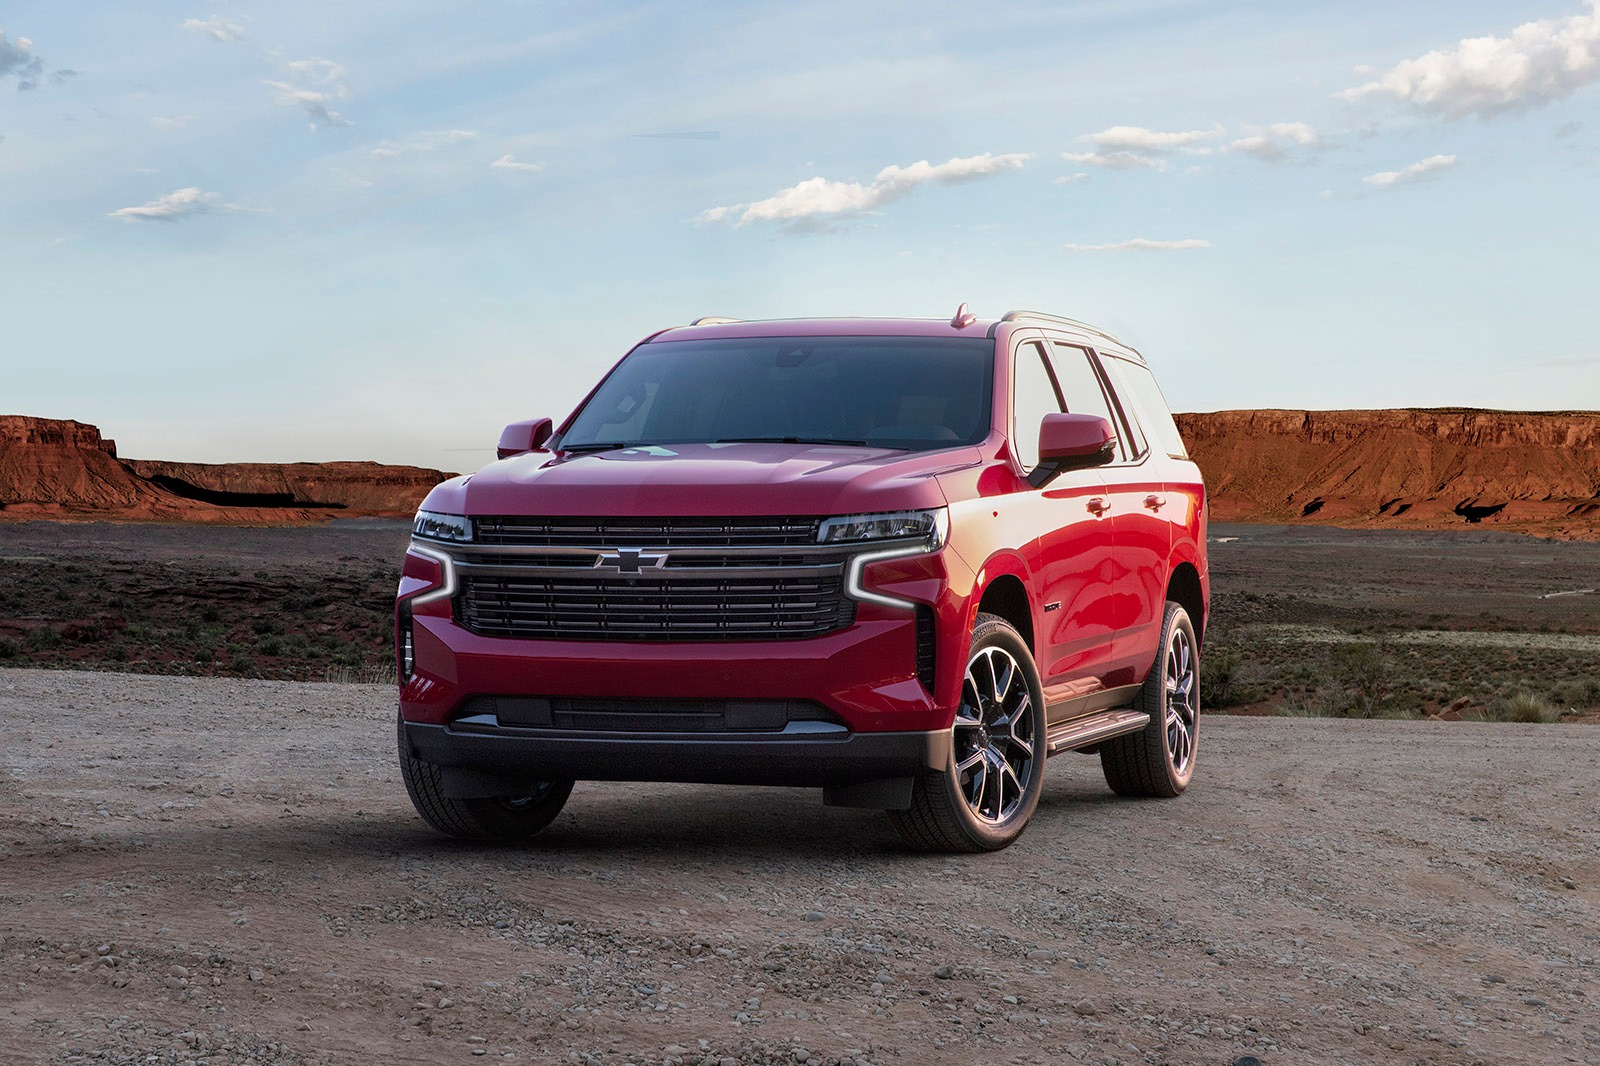 2021 Chevrolet Tahoe Prices, Reviews, And Pictures | Edmunds 2022 Chevy Tahoe Deals, Dashboard, Dealership